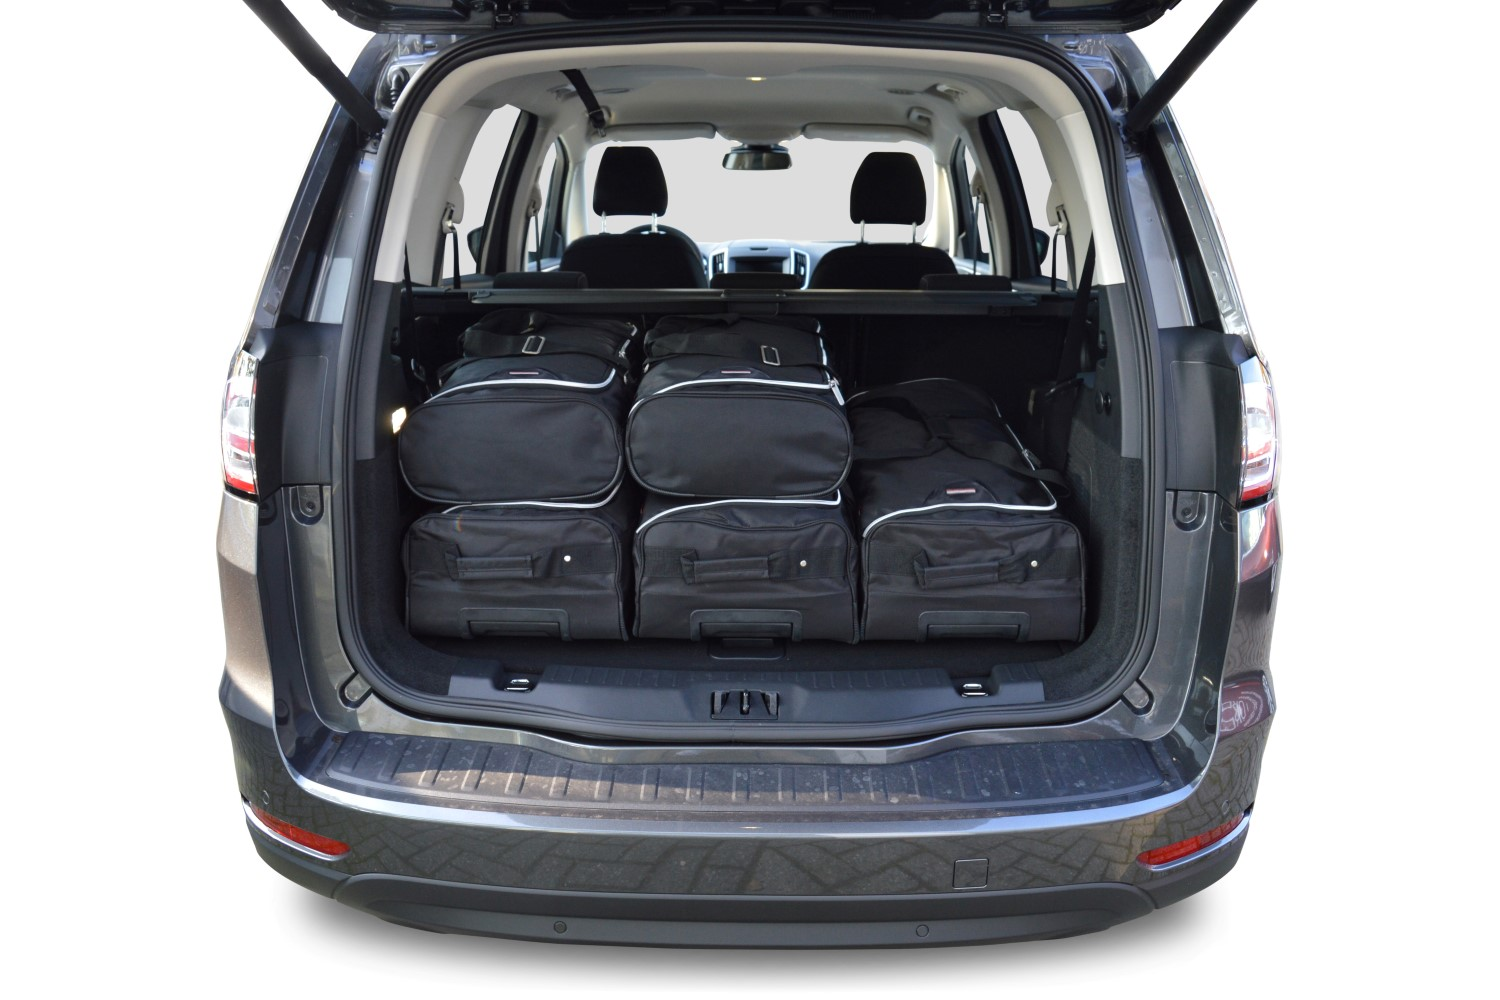 galaxy ford galaxy iii 2015 heute car bags reisetaschen. Black Bedroom Furniture Sets. Home Design Ideas